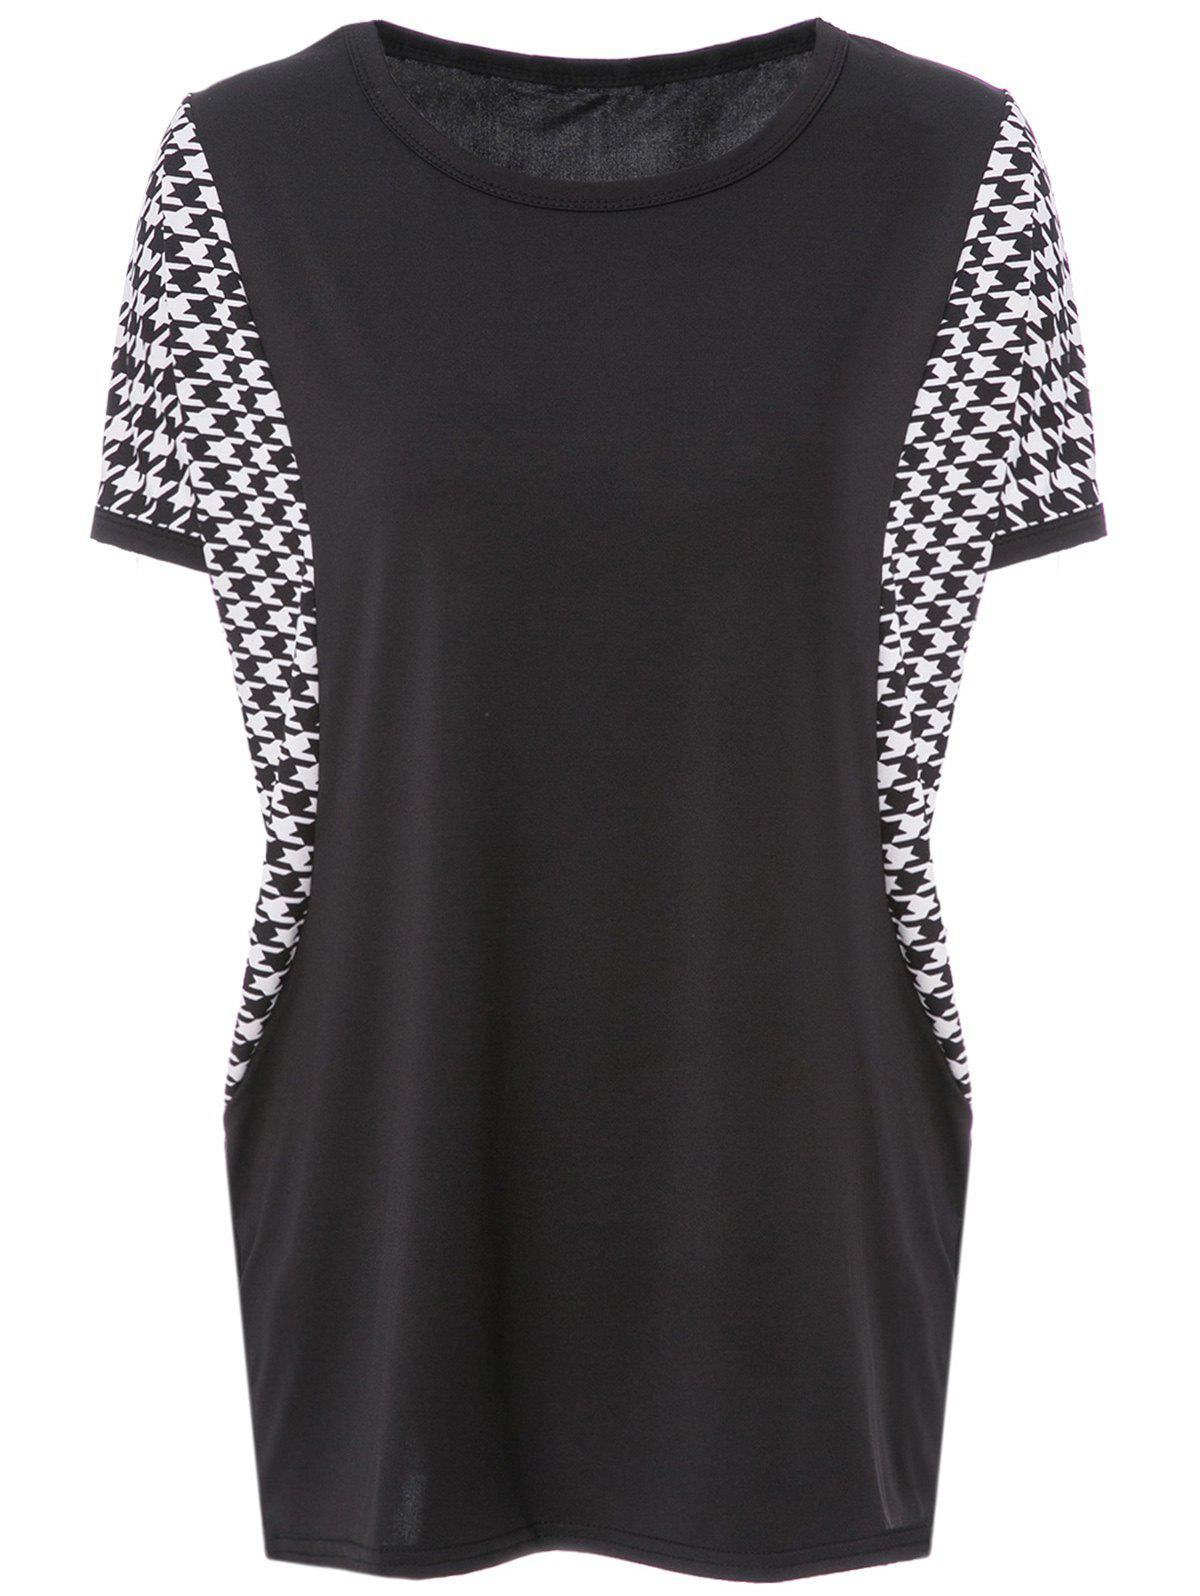 Shop Stylish Scoop Neck Dolman Sleeve Houndstooth T-Shirt For Women